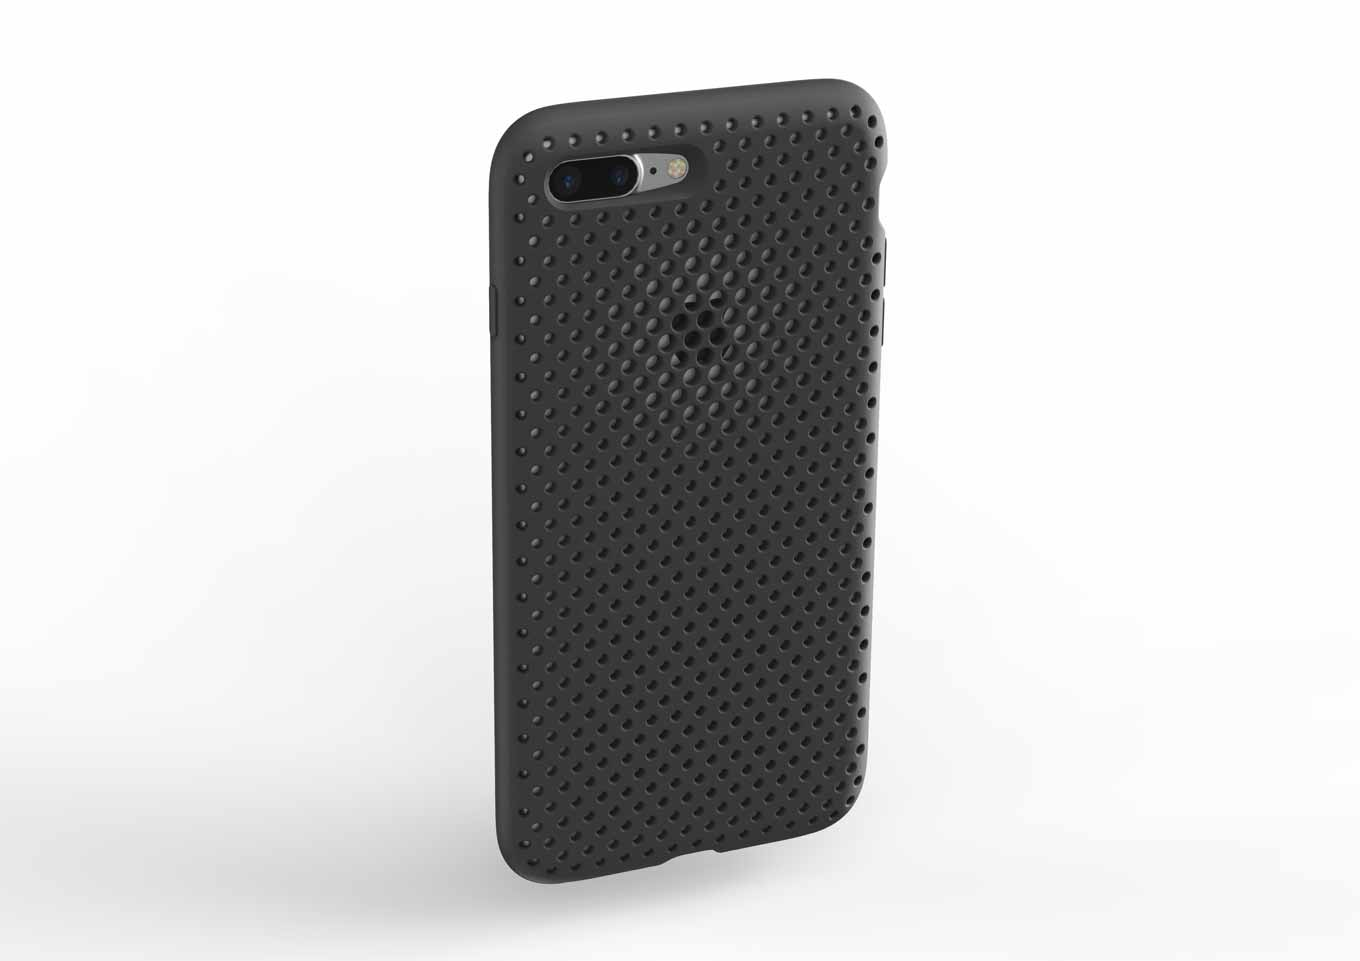 AndMesh、「AndMesh Mesh Case for iPhone 7 Plus」を販売開始 【500円クーポンは終了】